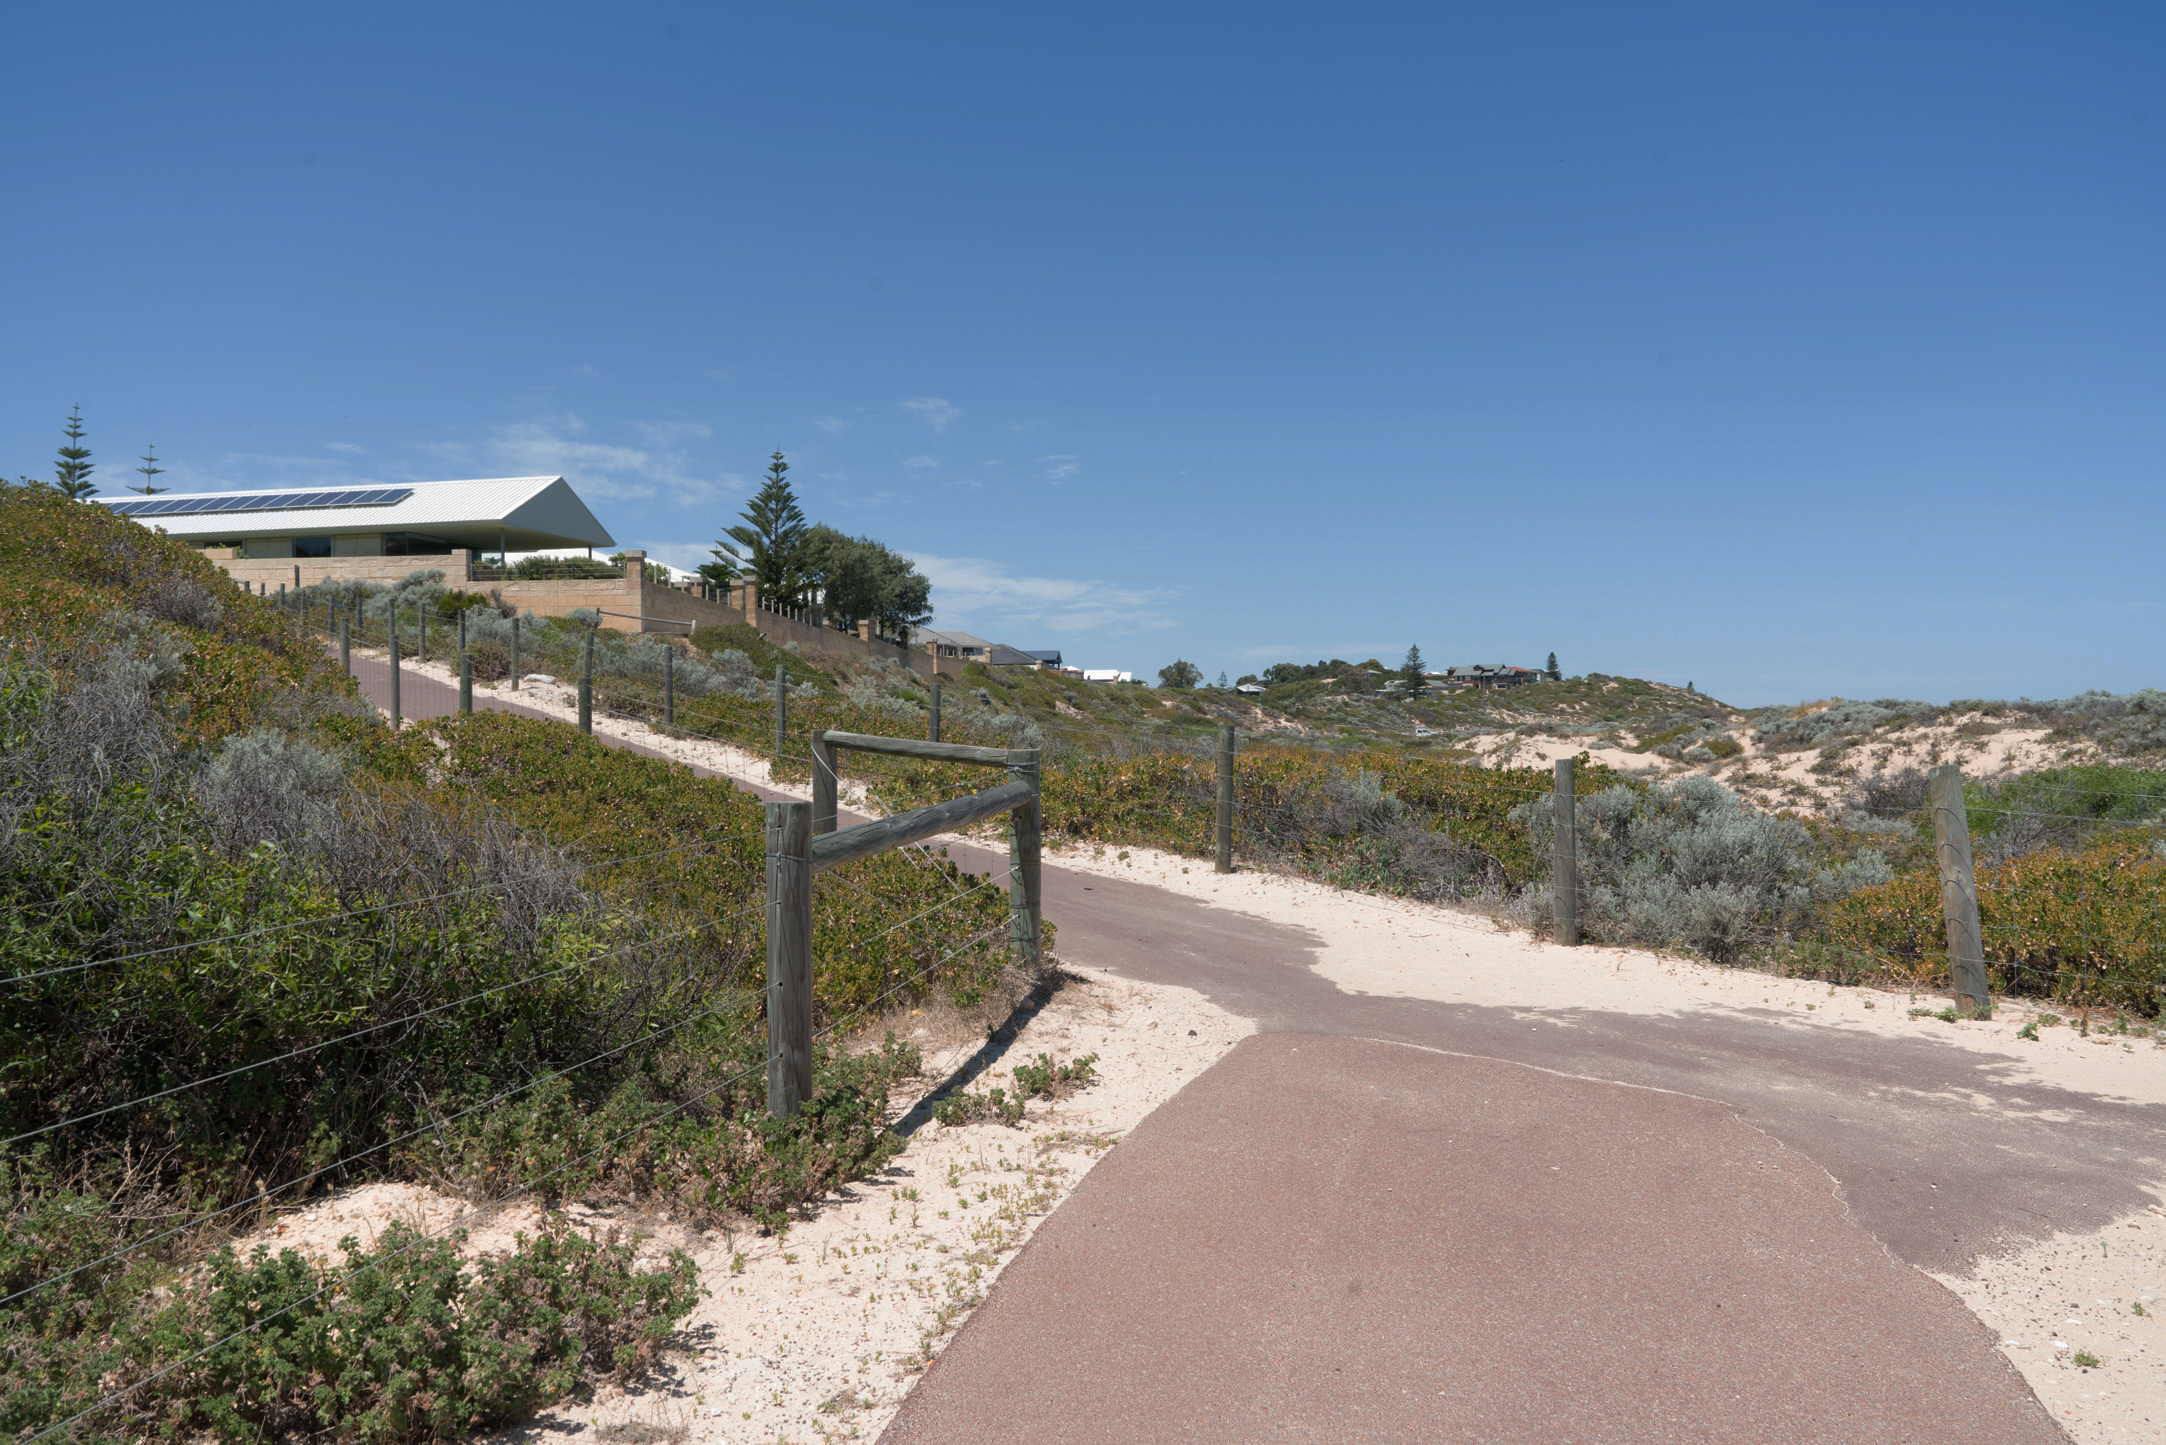 Plate 5: End of the coastal path, and the path up to the Melros residential area